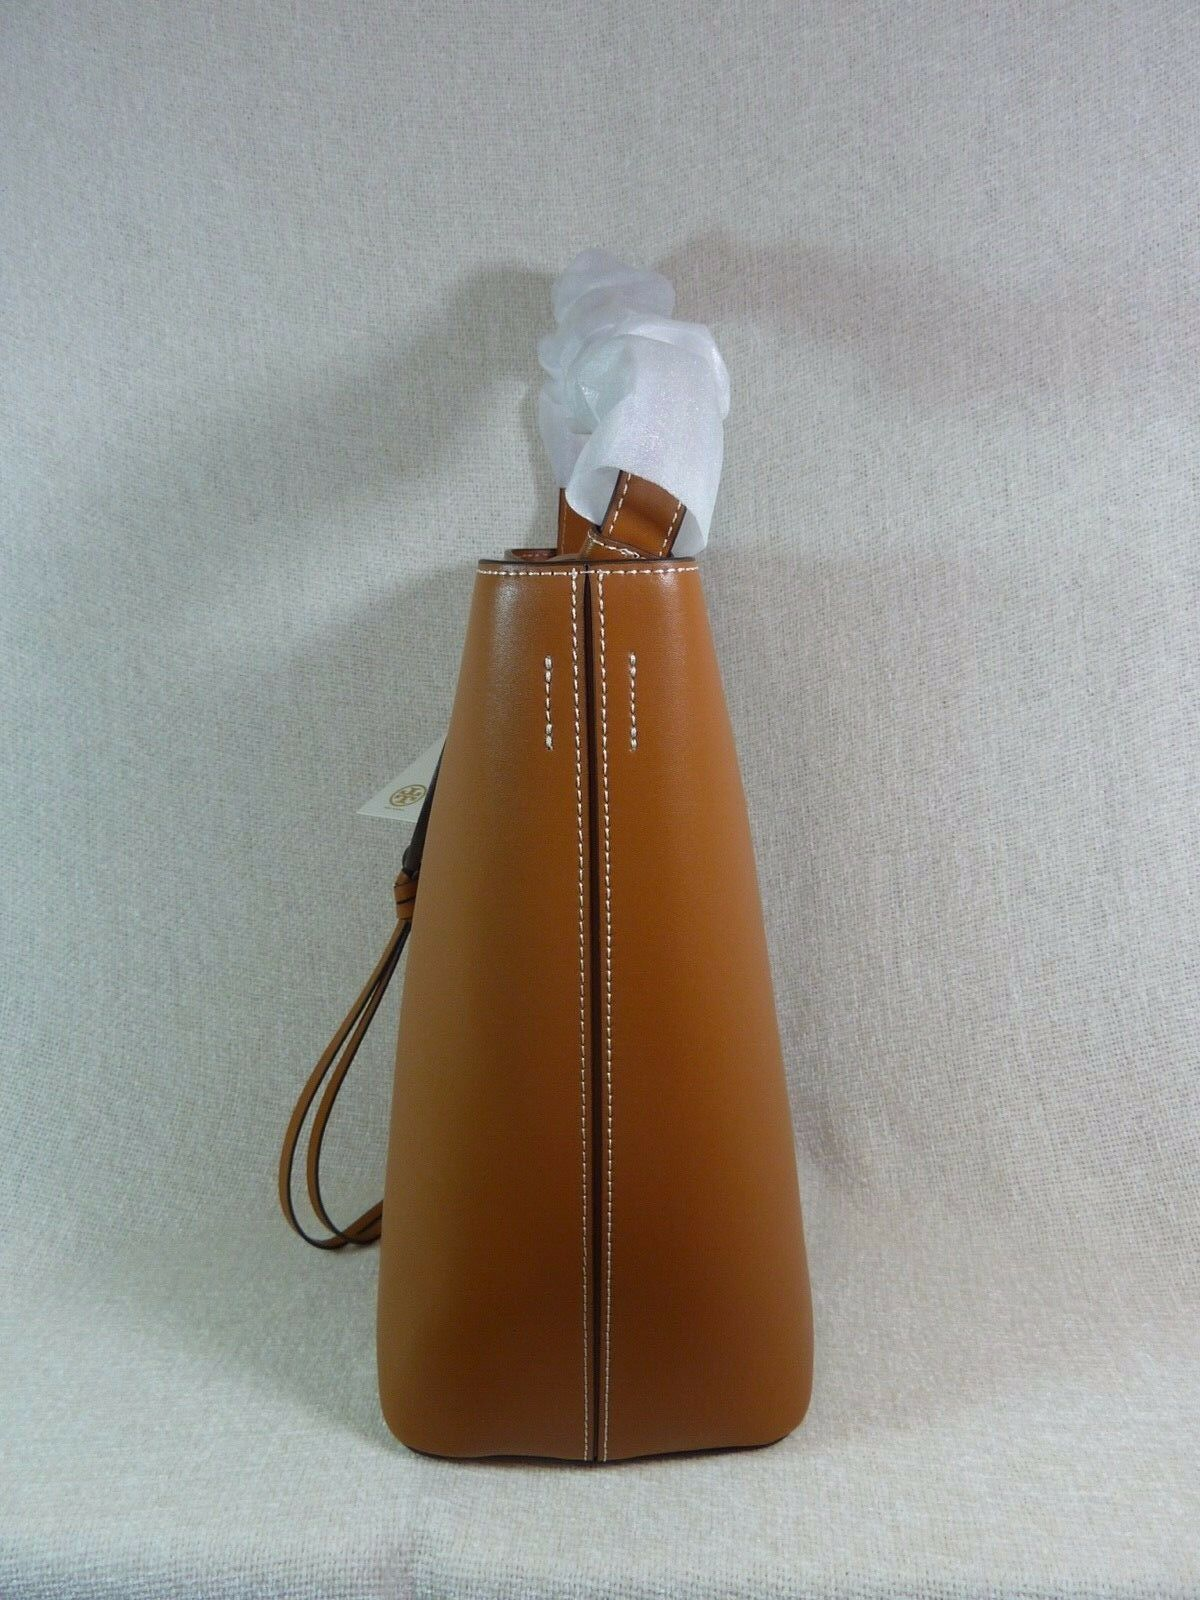 NWT Tory Burch Aged Camello Miller Hobo/Shoulder Tote - Minor Imperfection image 5